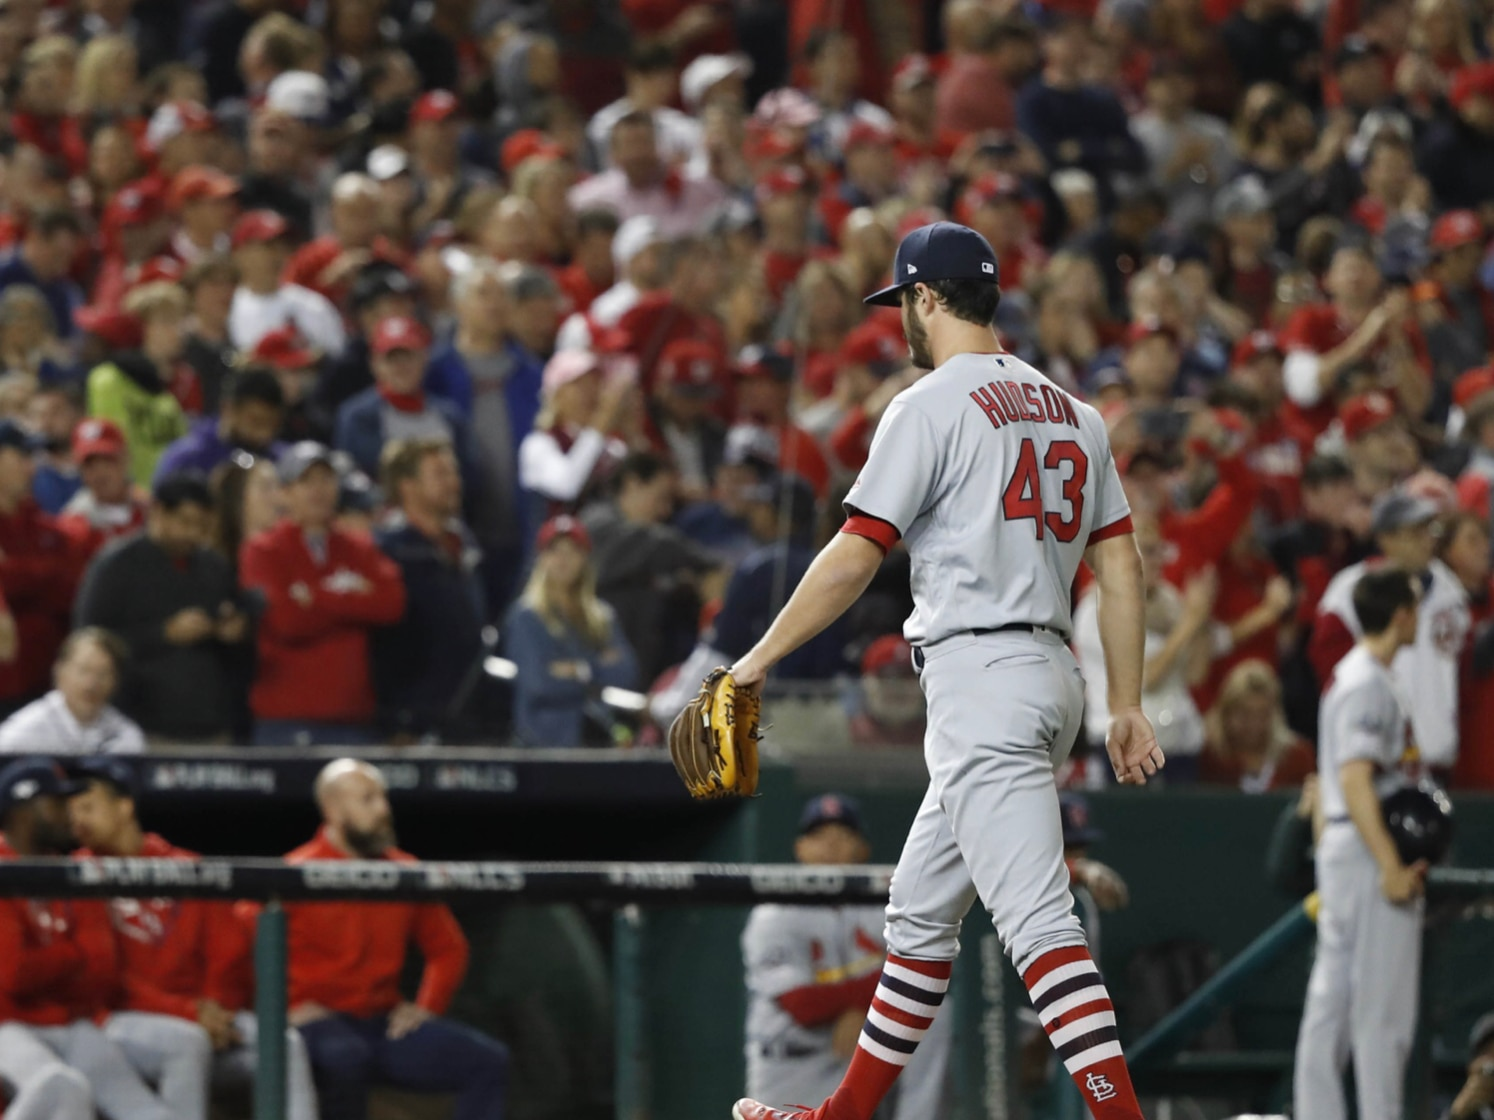 Baby Shark lifts Washington Nationals to first World Series appearance